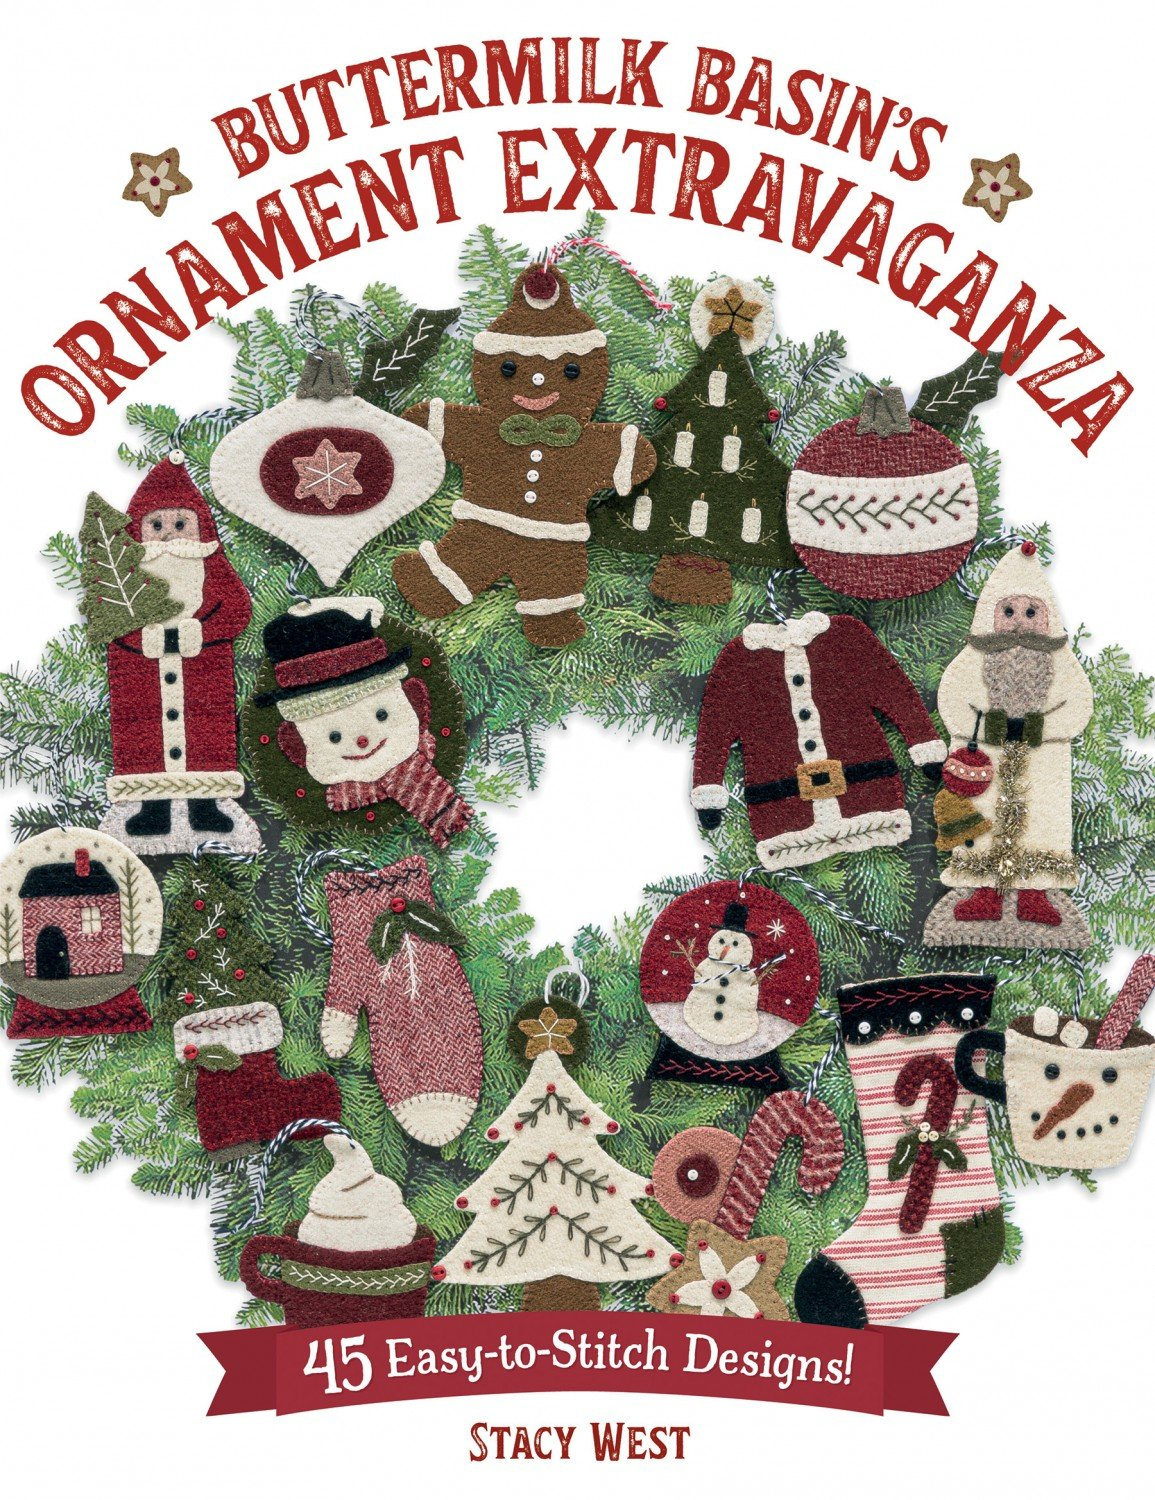 Buttermilk Basin Ornament Extravaganza Book